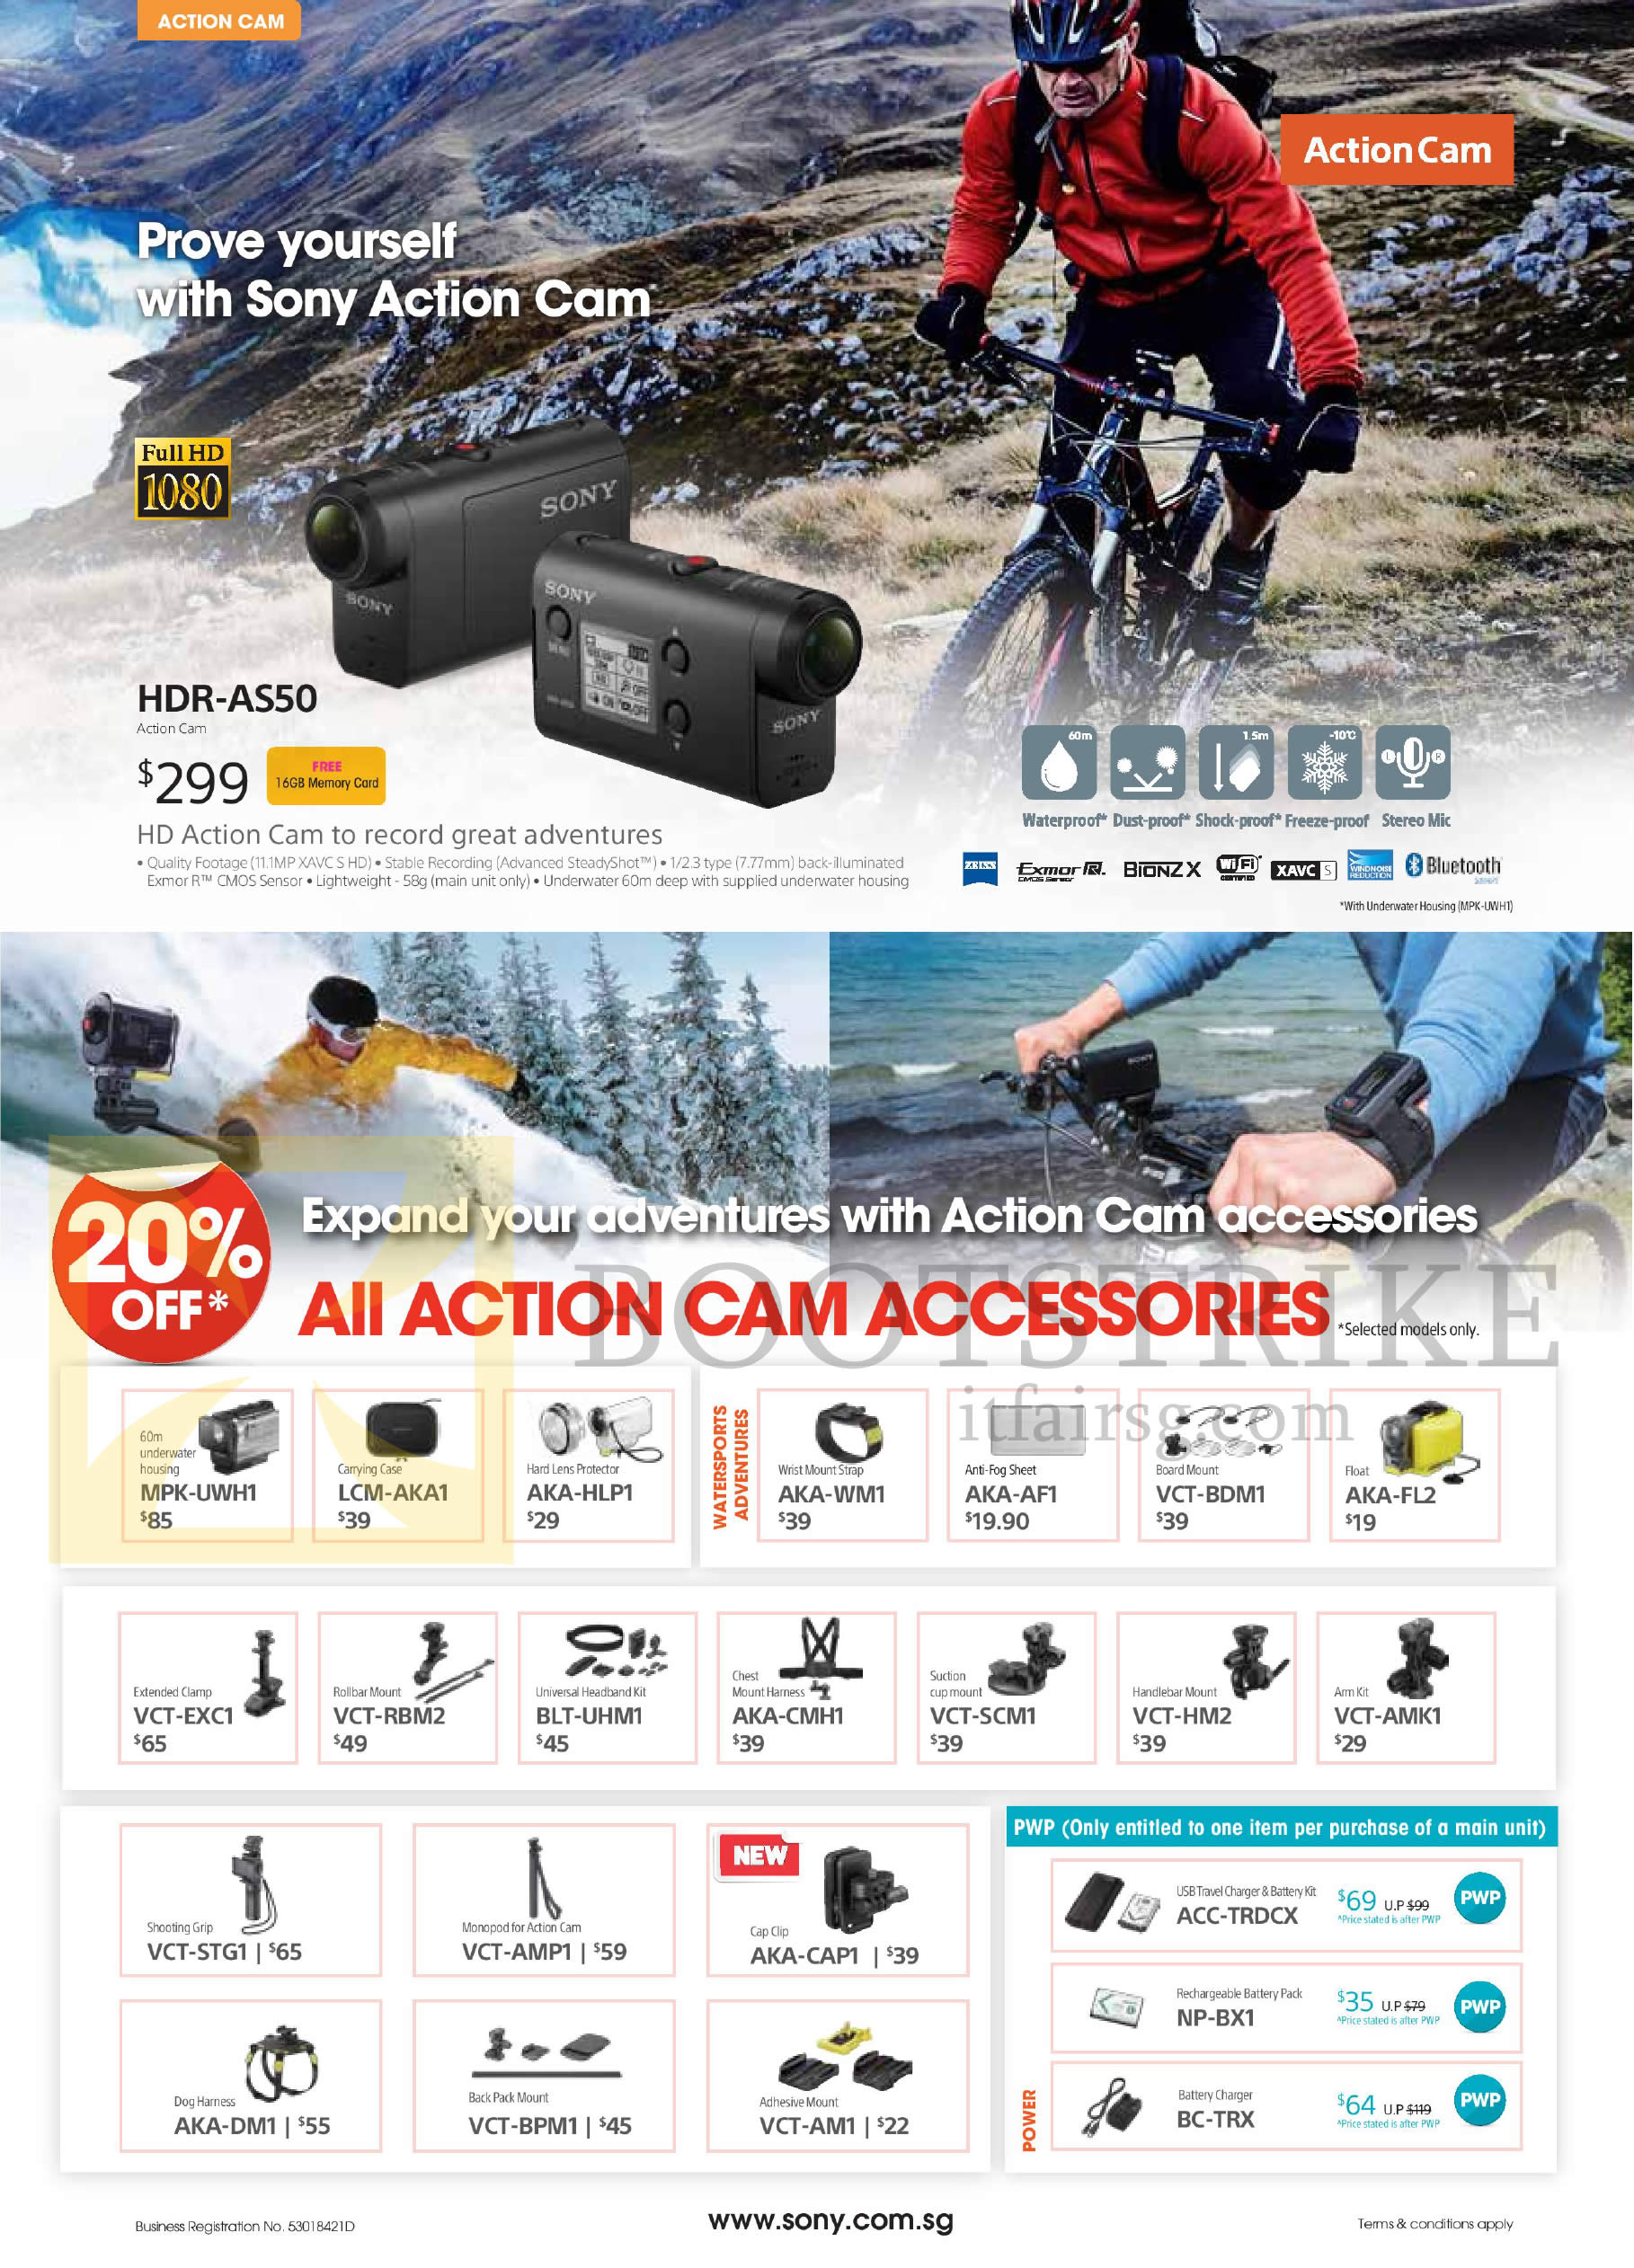 COMEX 2016 price list image brochure of Sony Action Cam, Accessories, HDR-AS50, MPK-UWH1, LCM-AKA1, AKA-HLP1, VCT-EXC1, RBM2, BLT-UHM1, AKA-CMH1, VCT-SCM1, STG1, AMP1, AKA-CAP1, DM1